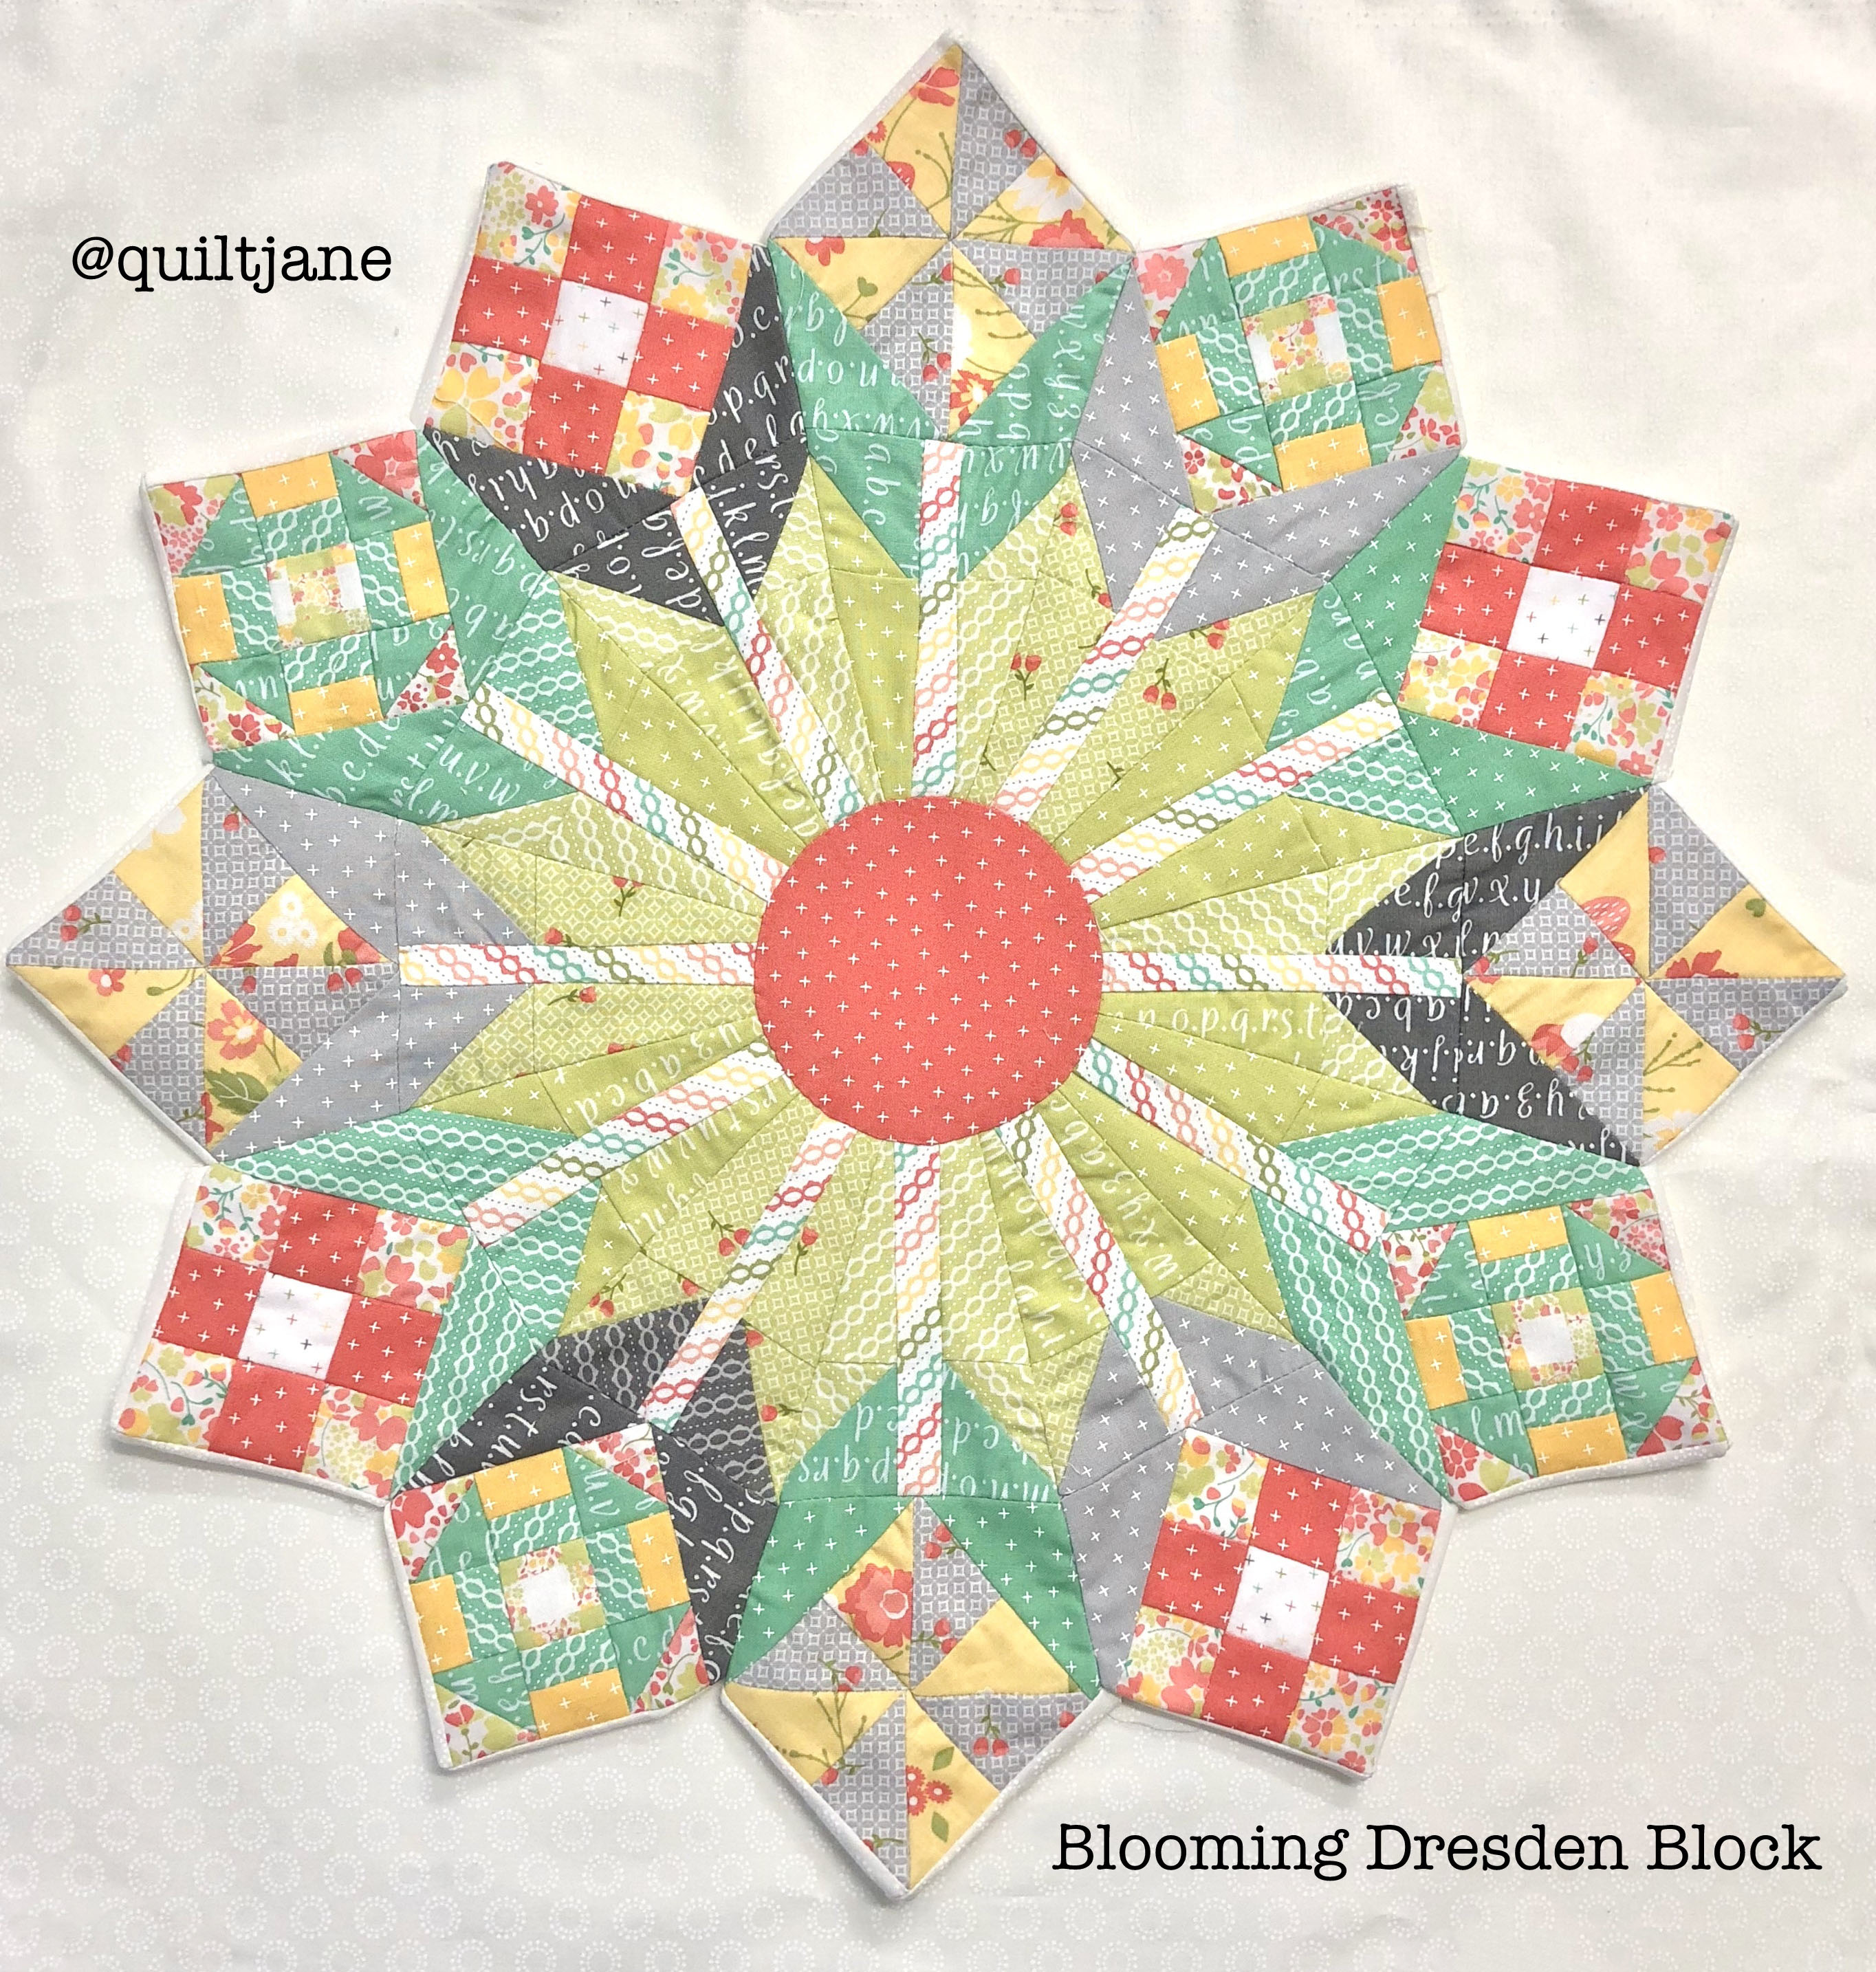 bloomingdresdenblock.jpg